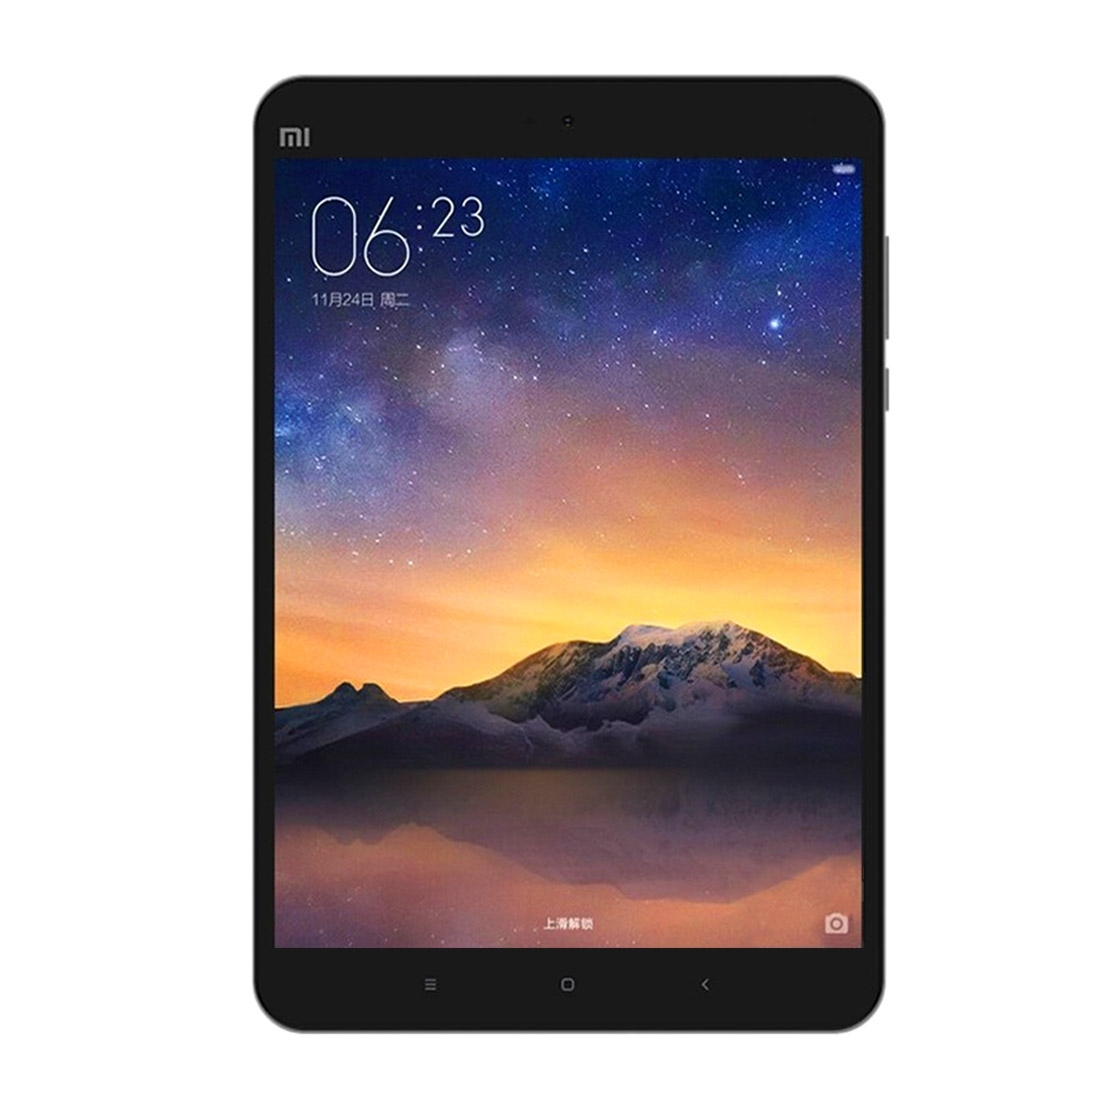 Original Xiaomi Mipad 2 MI Pad 2 Intel Atom X5 7.9 Inch Full Metal Body Tablet PC 2048X1536 2GB RAM 16GB/ 64GB ROM 8MP 6190mAh